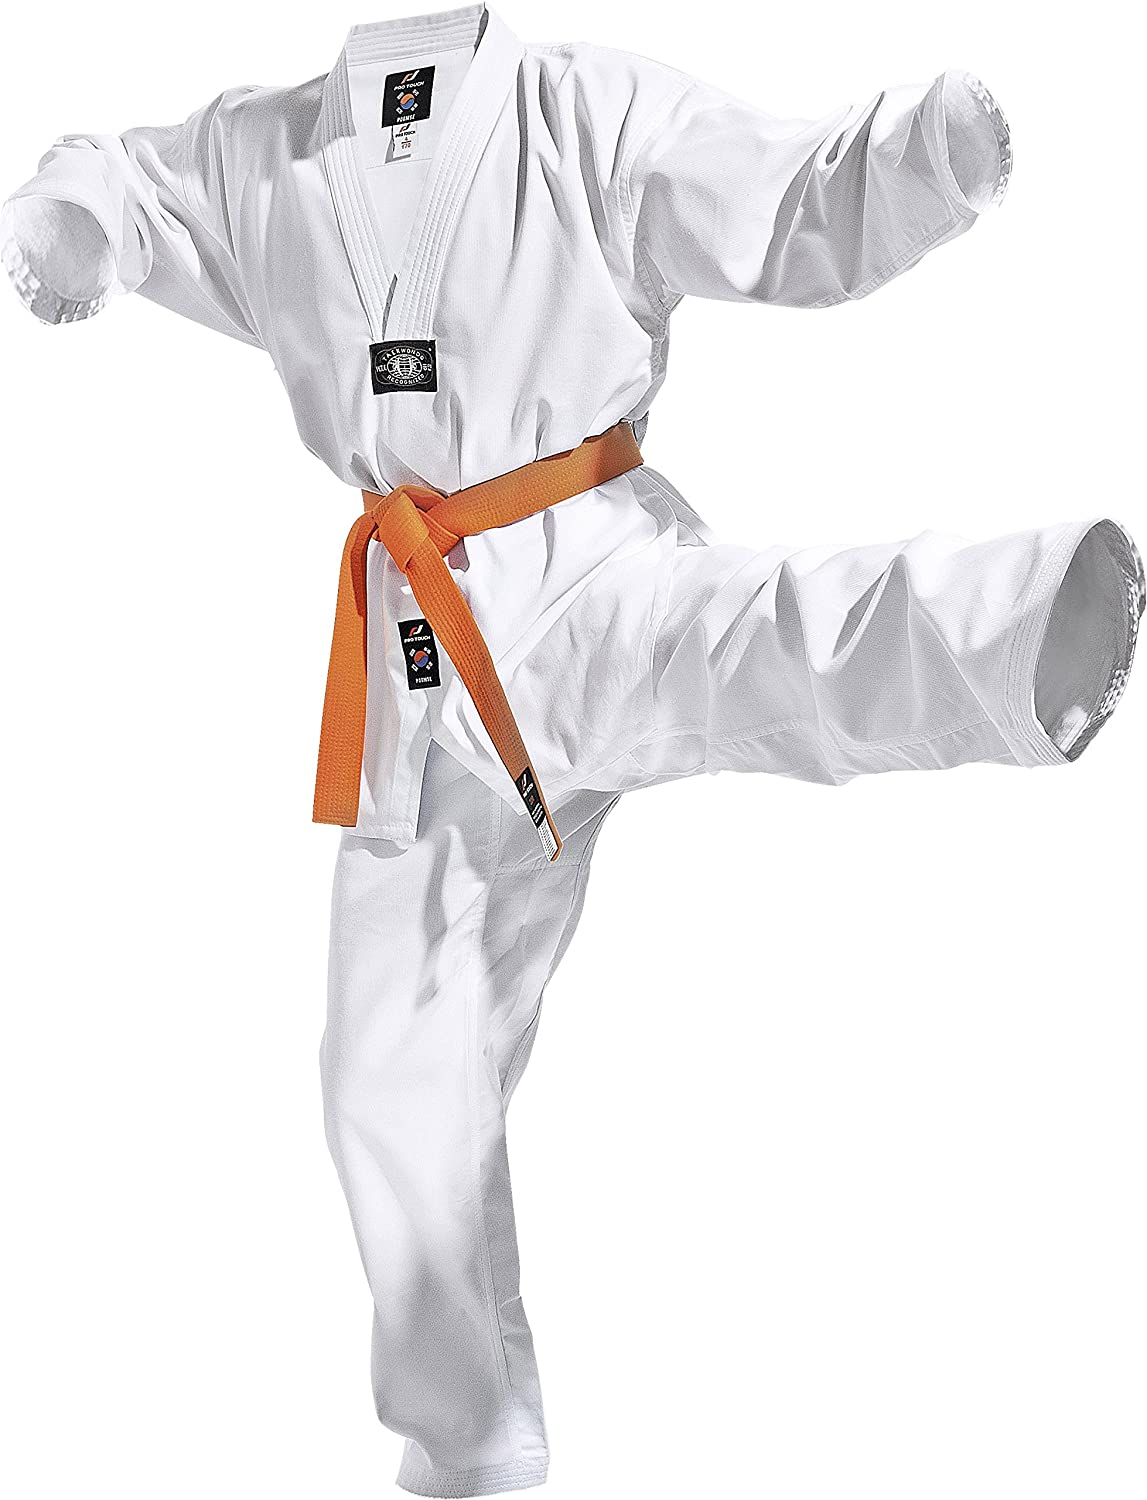 Taekwondo tuta poomse – Bianco INTERSPORT